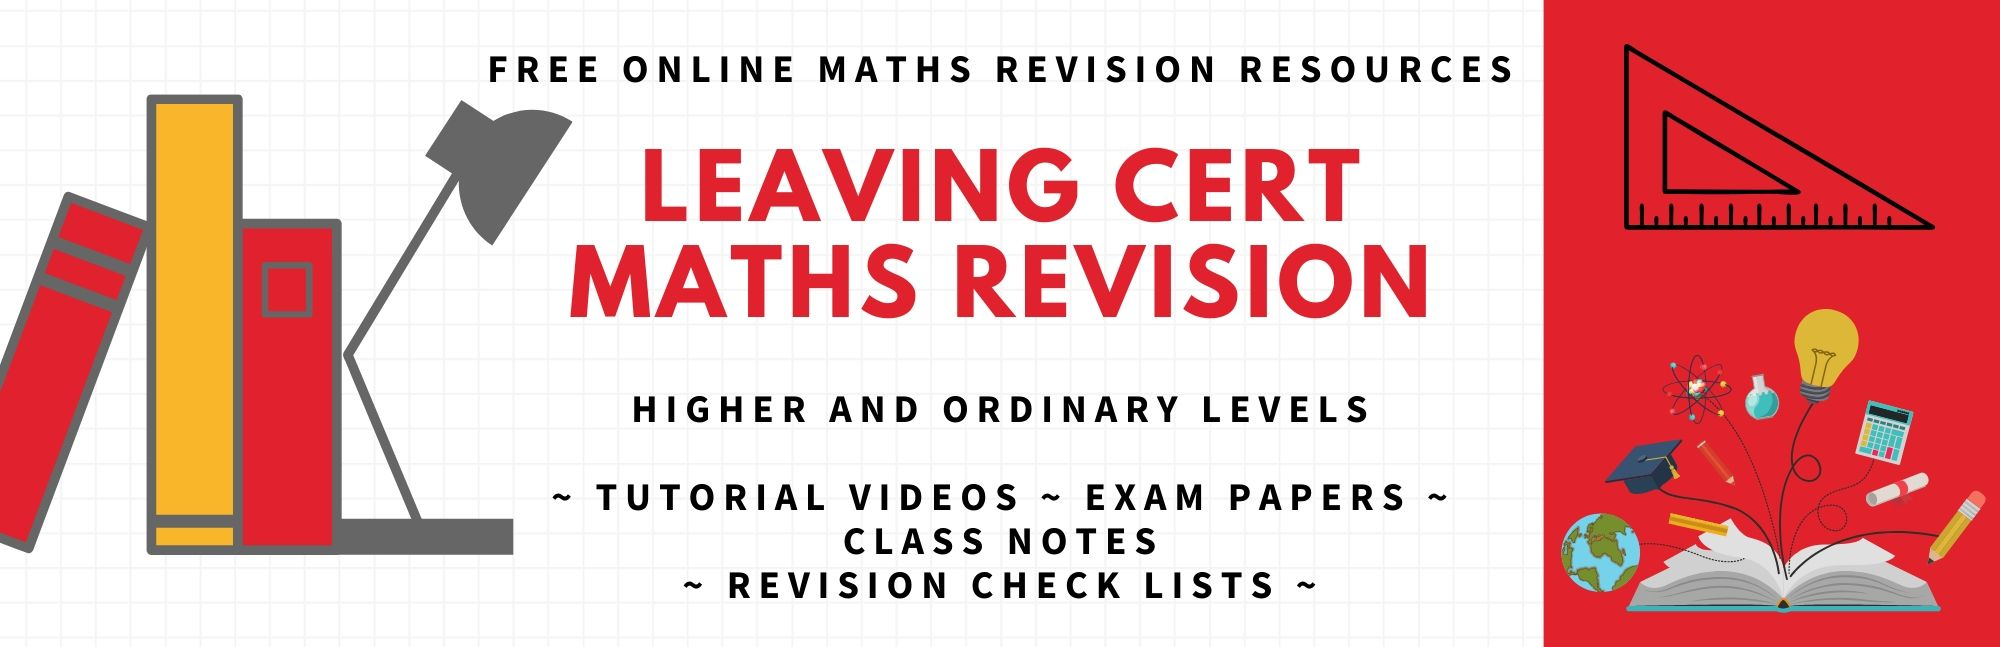 Leaving cert maths revision with Griffith College